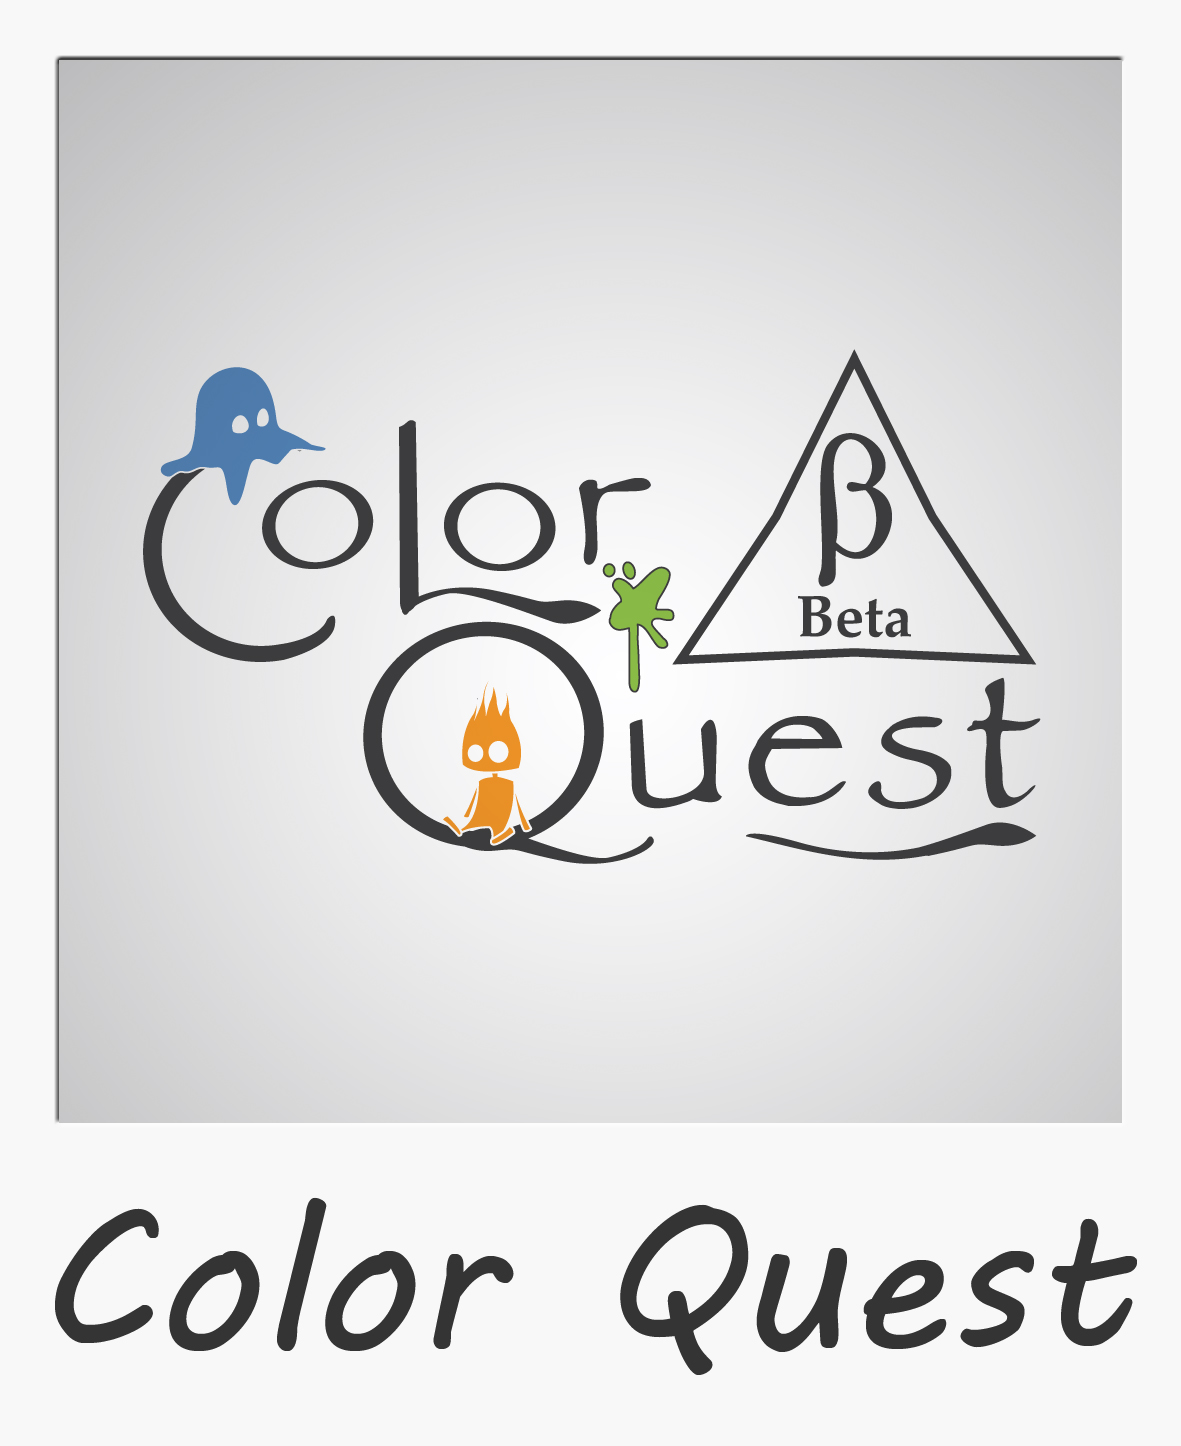 Color Quest Beta news